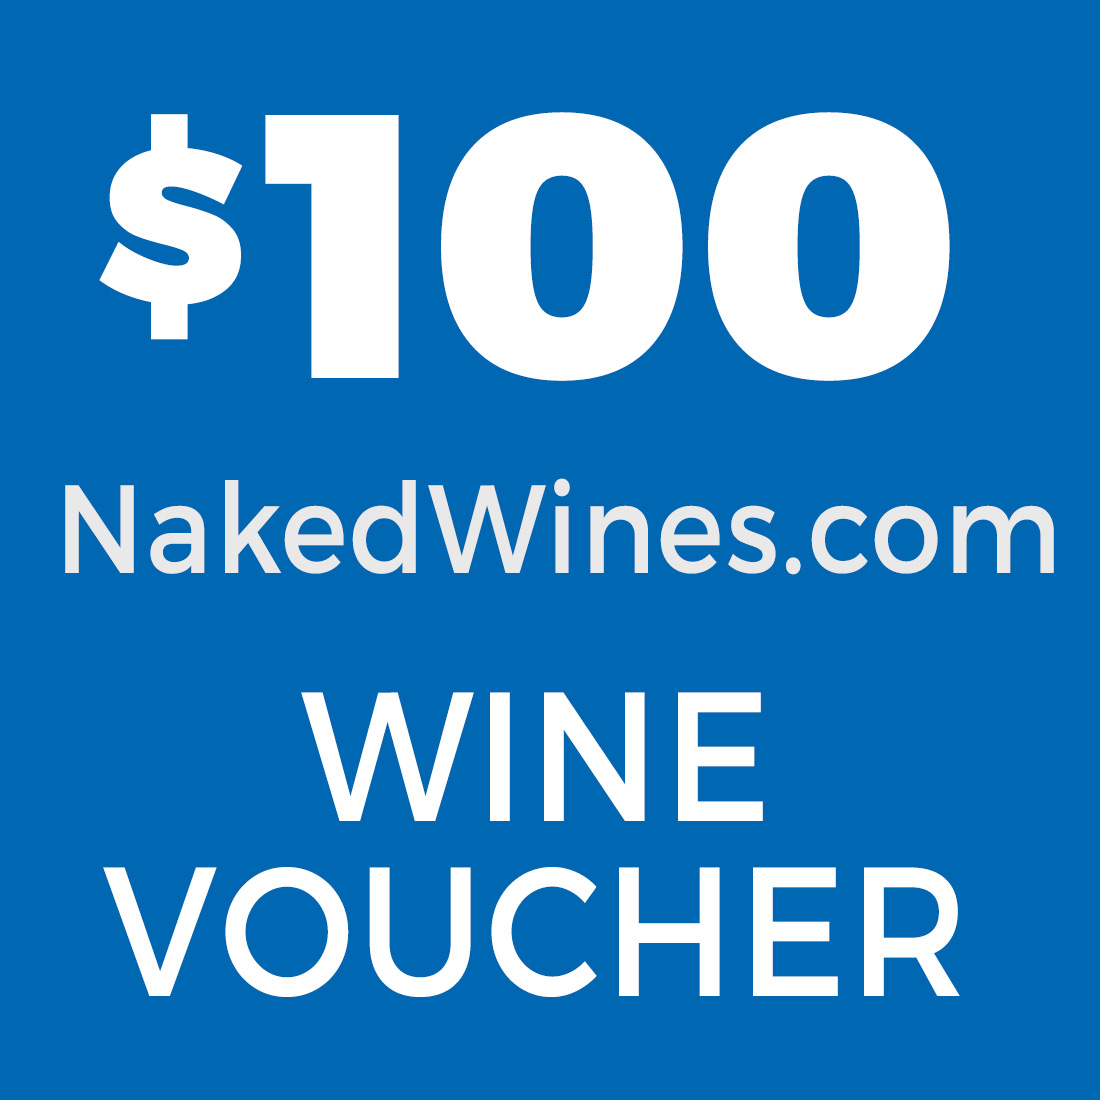 how to leave naked wines